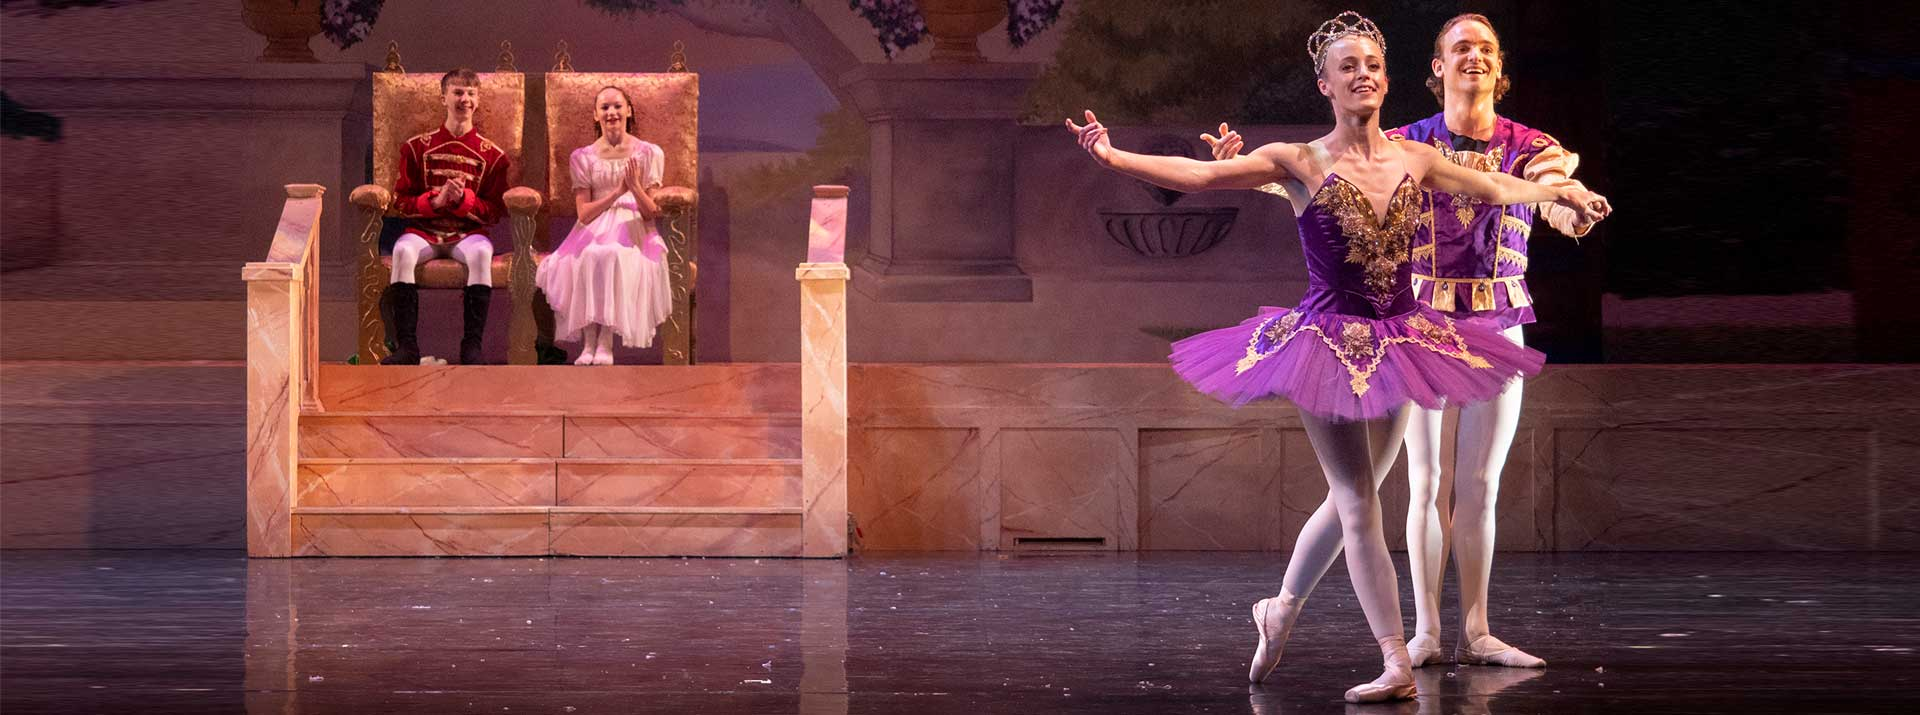 Support the Garden City Ballet - dancers on stage